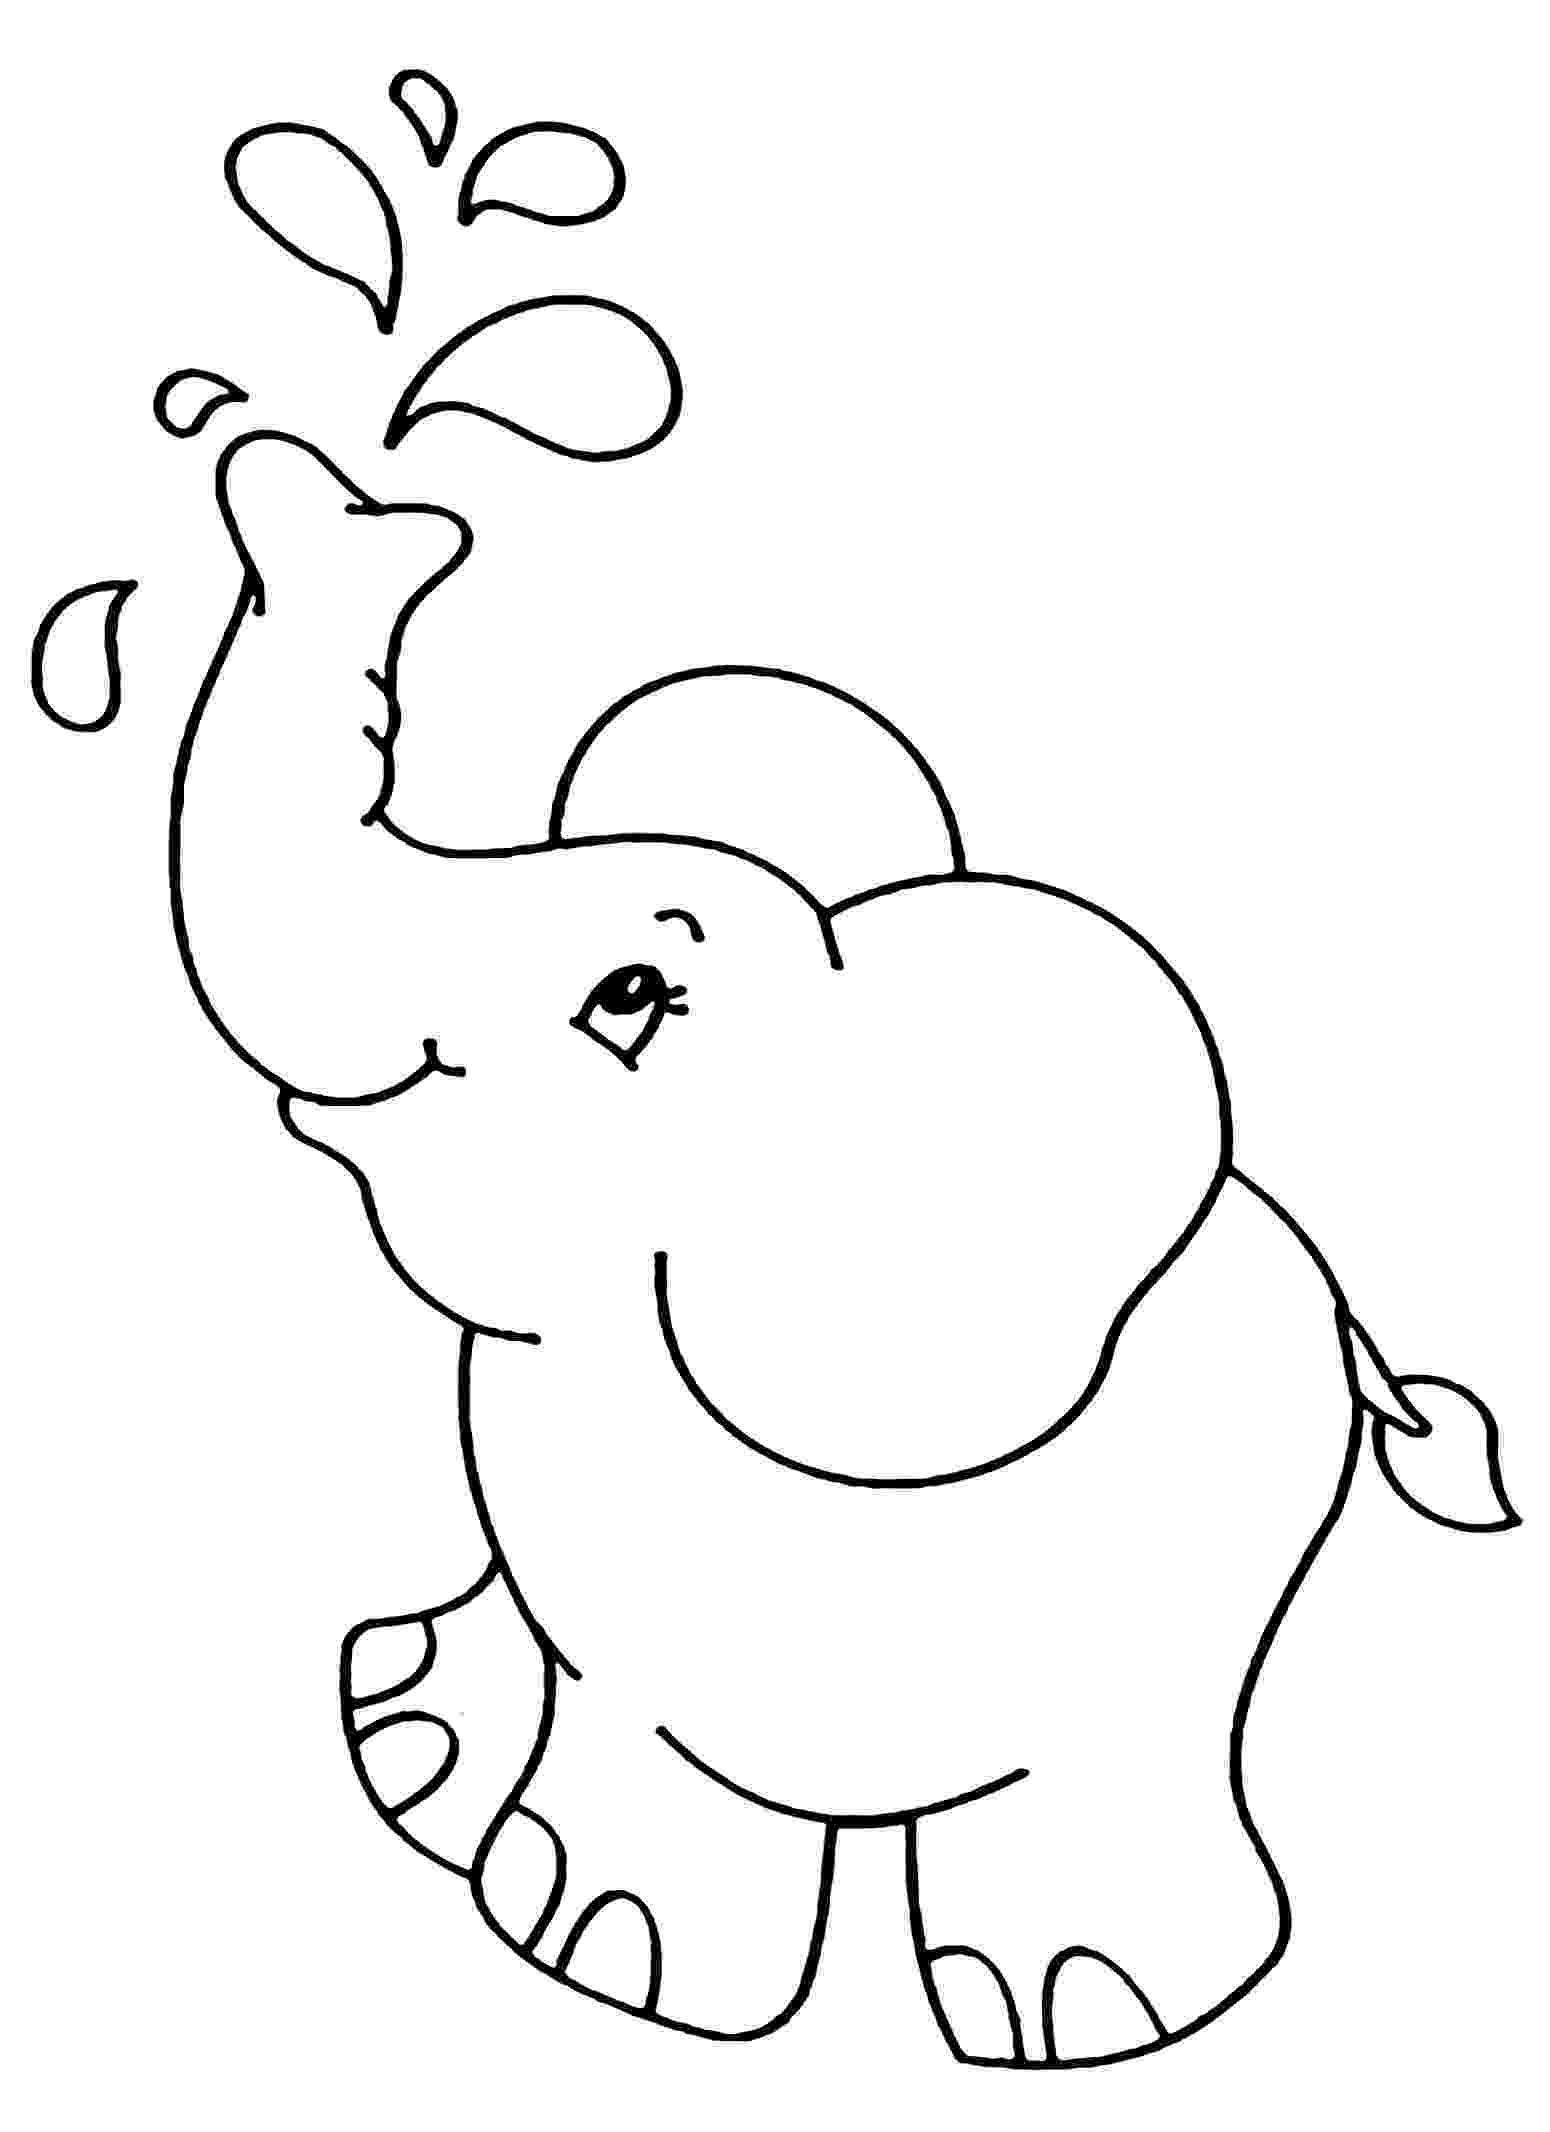 elephant images for colouring elephant coloring pages free download on clipartmag elephant images for colouring